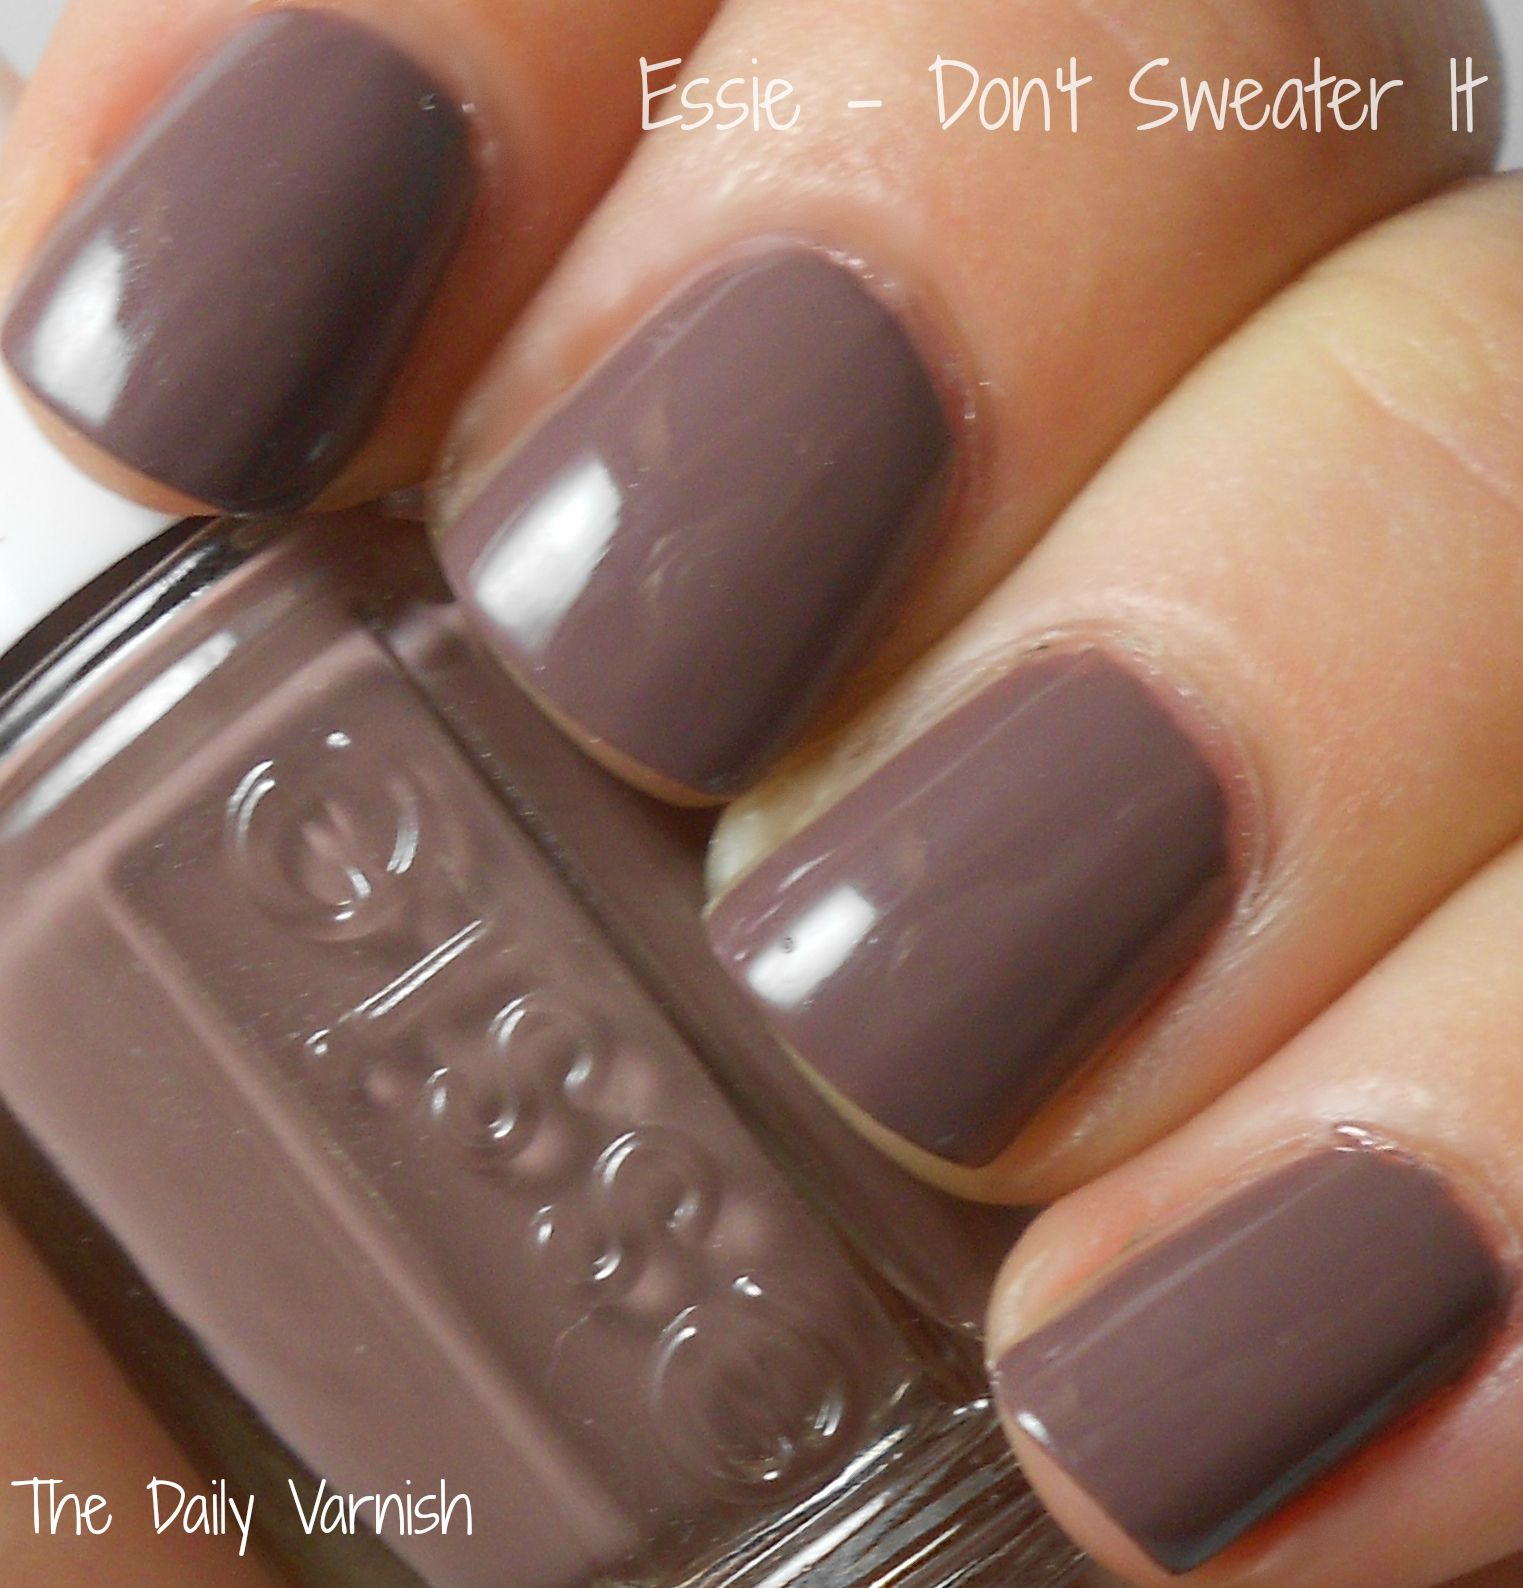 Pin by Lindsay Childers on My Style | Pinterest | Makeup, Nail ...